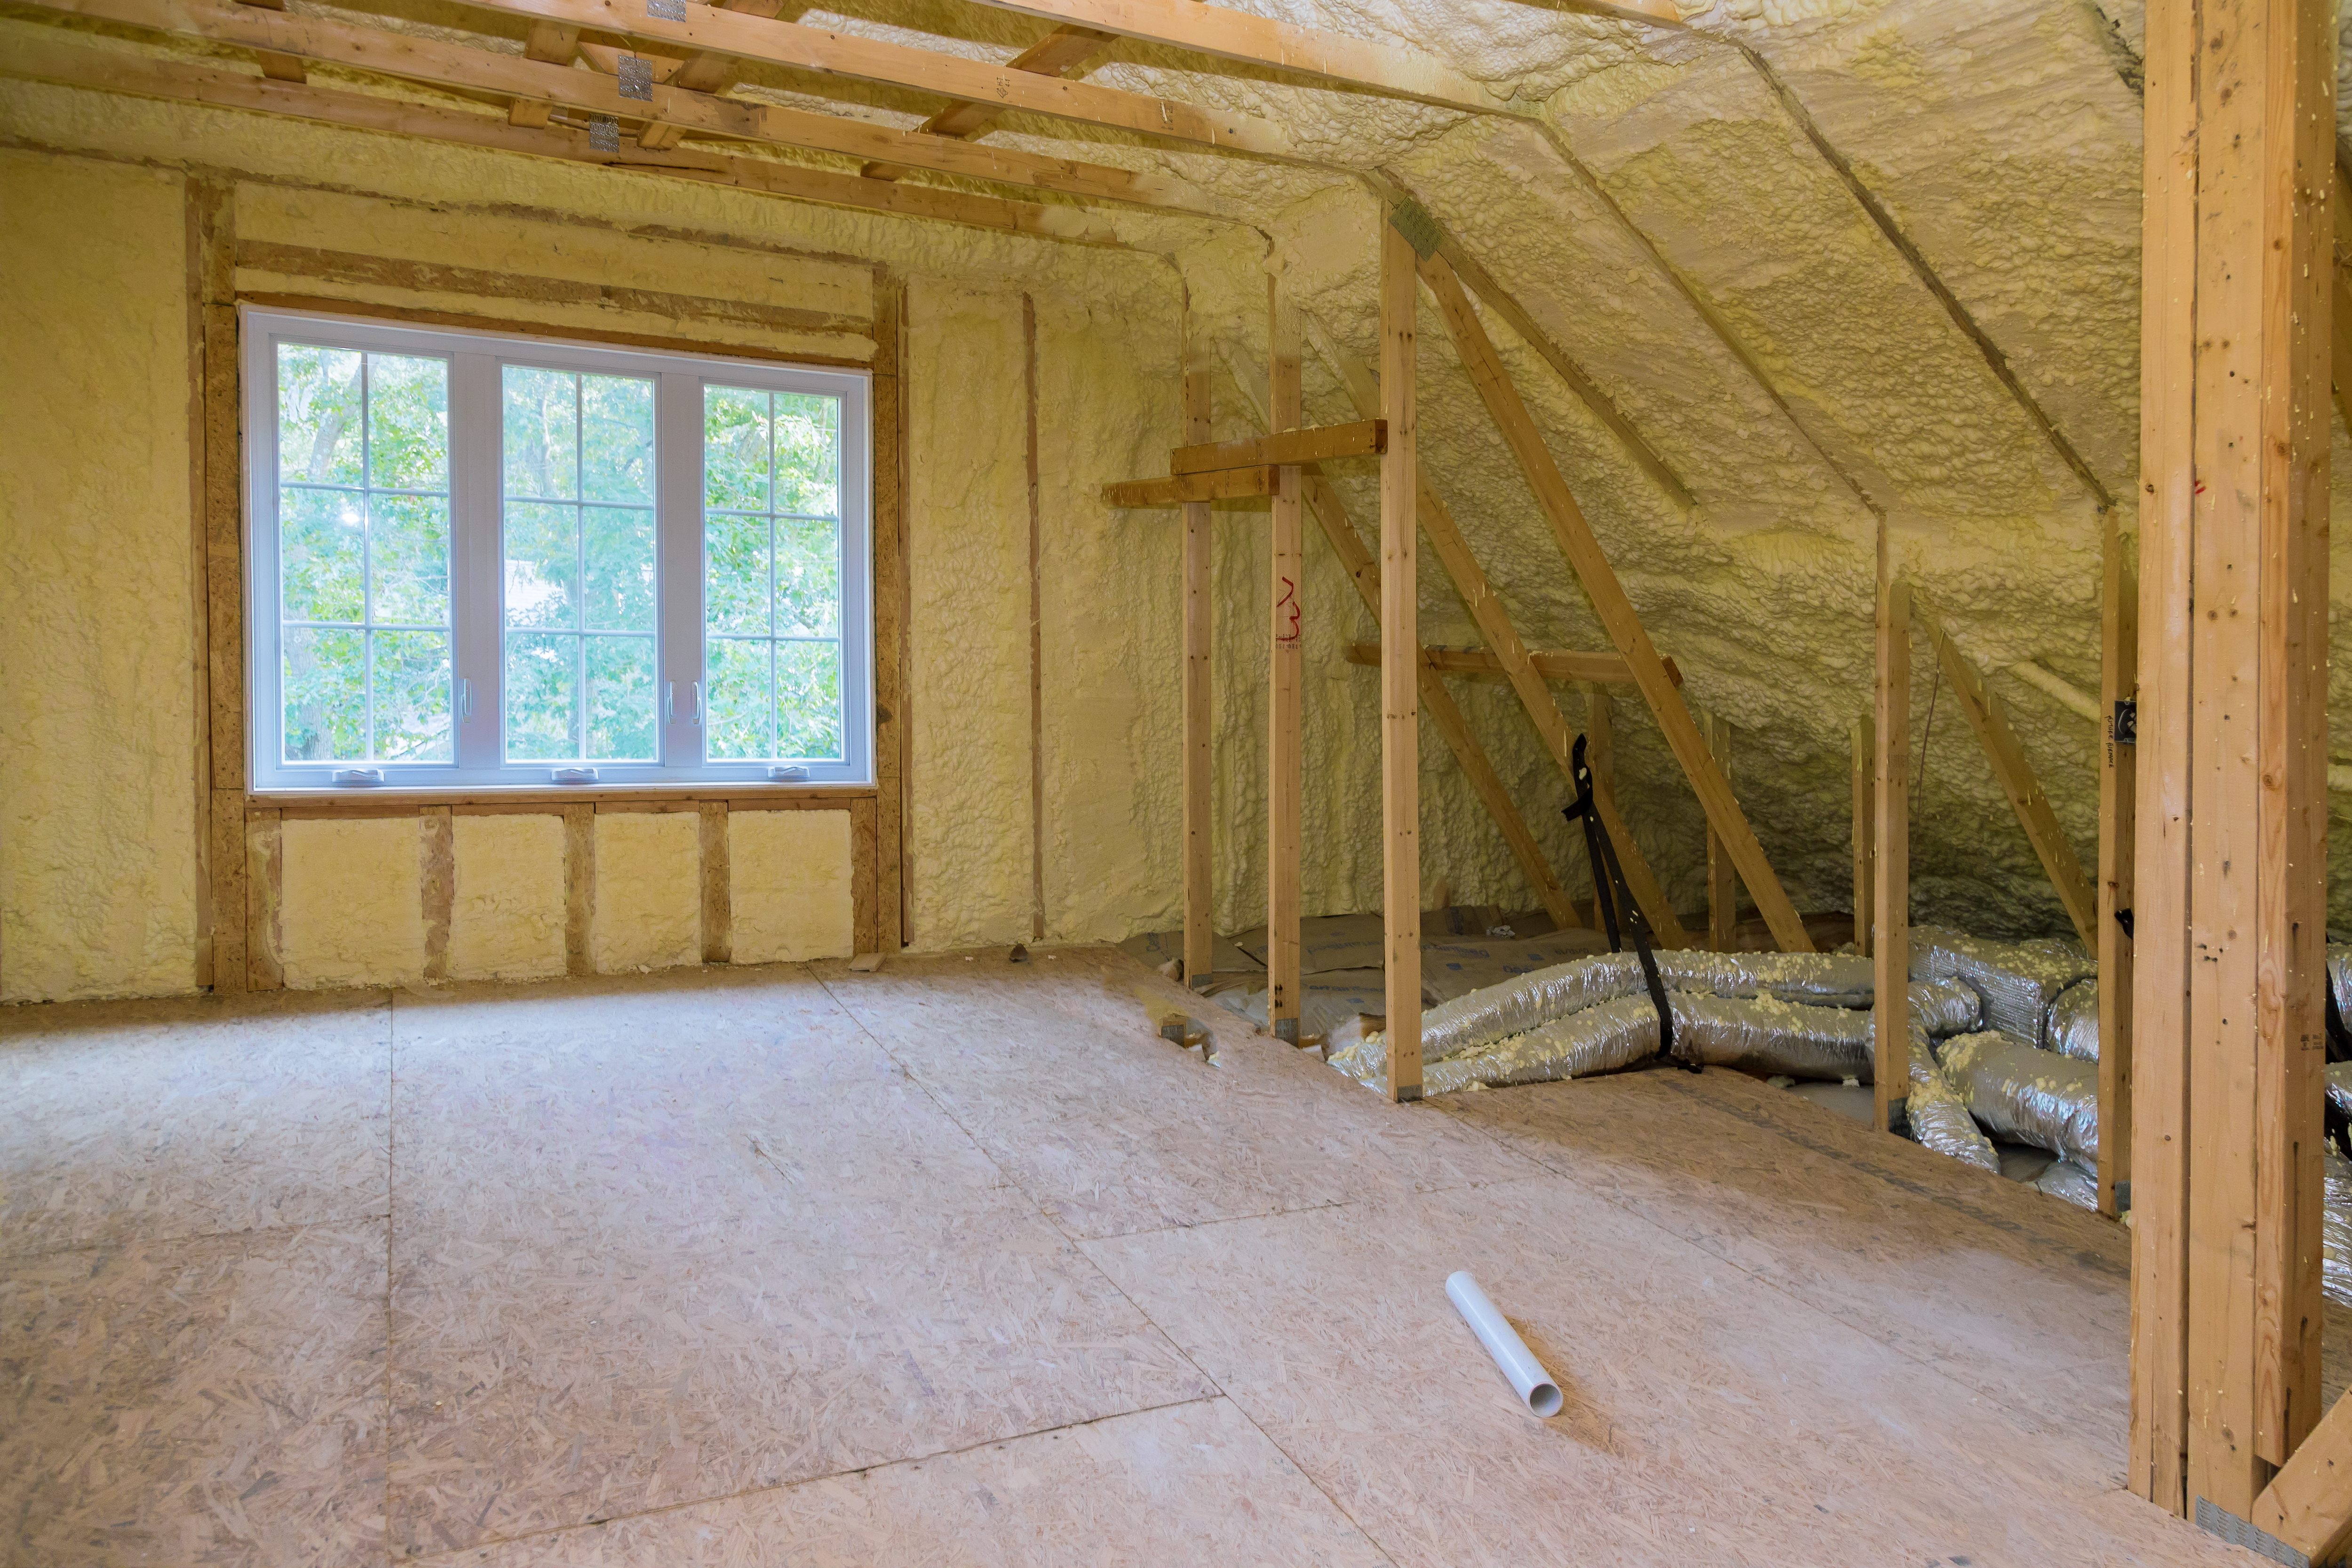 Insulation of thermal insulation attic with cold barrier and insulation material